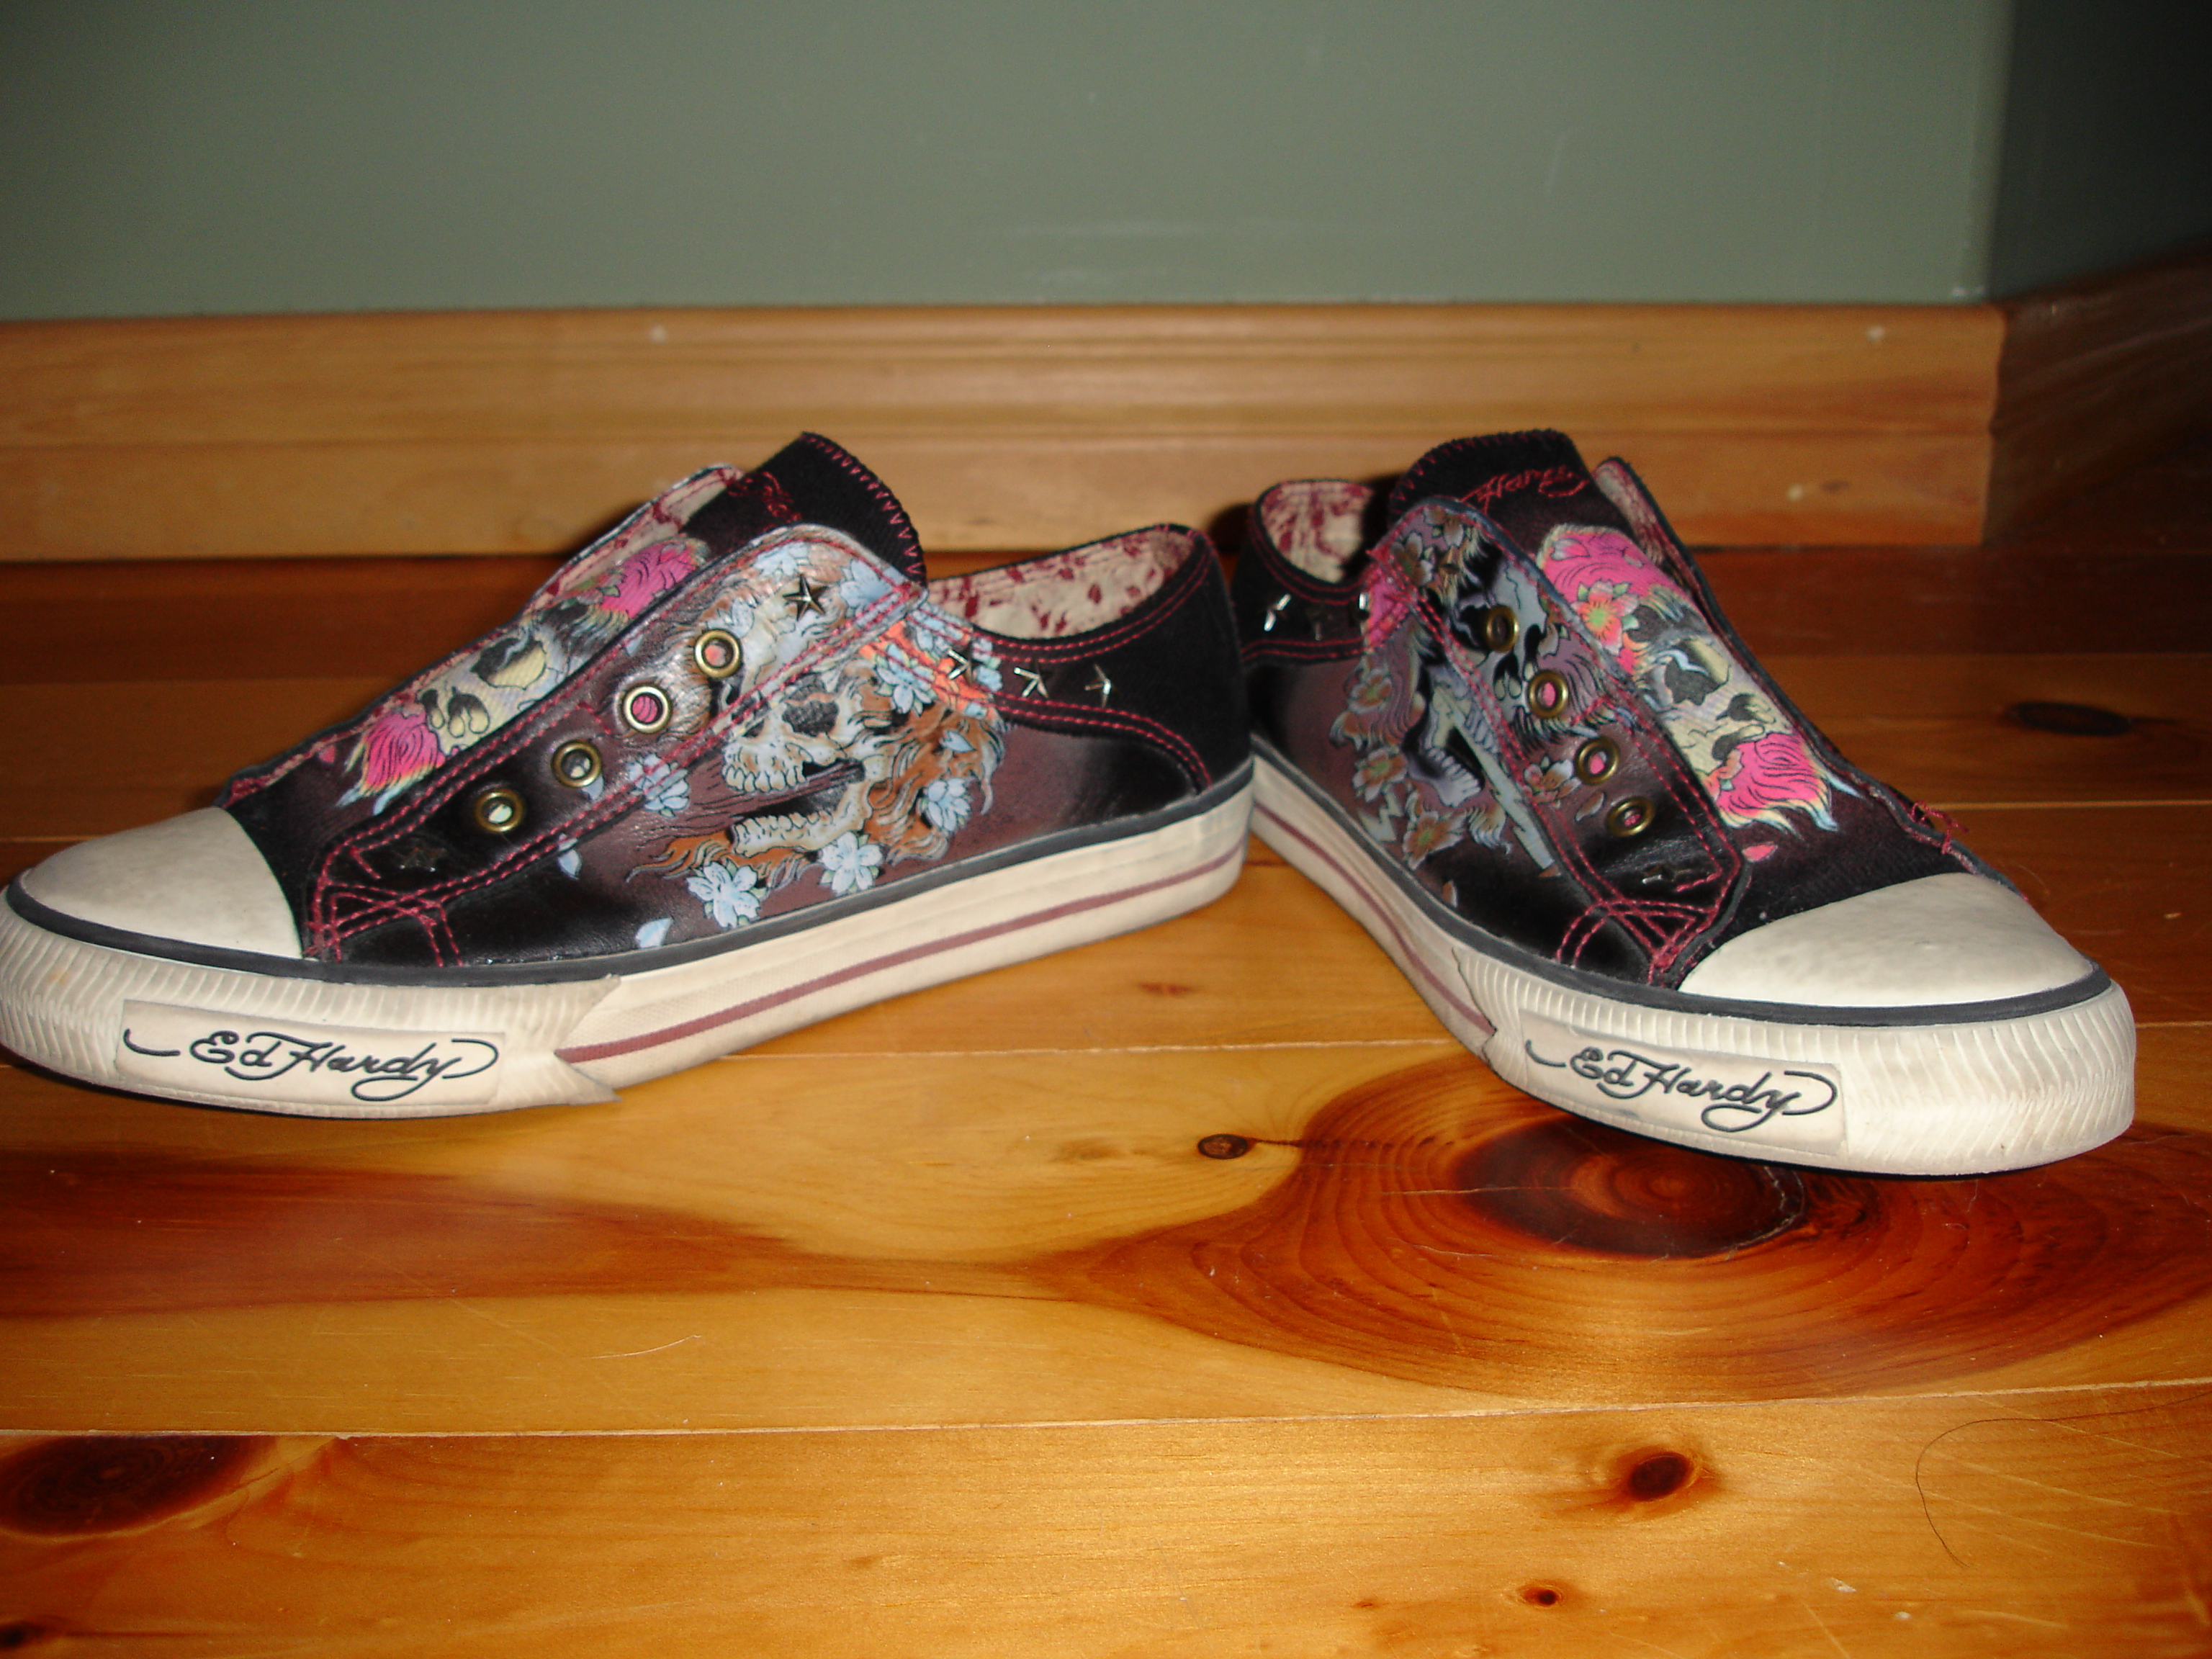 Fashionable people questionable things monday shoe - Ed hardy lisa frank ...